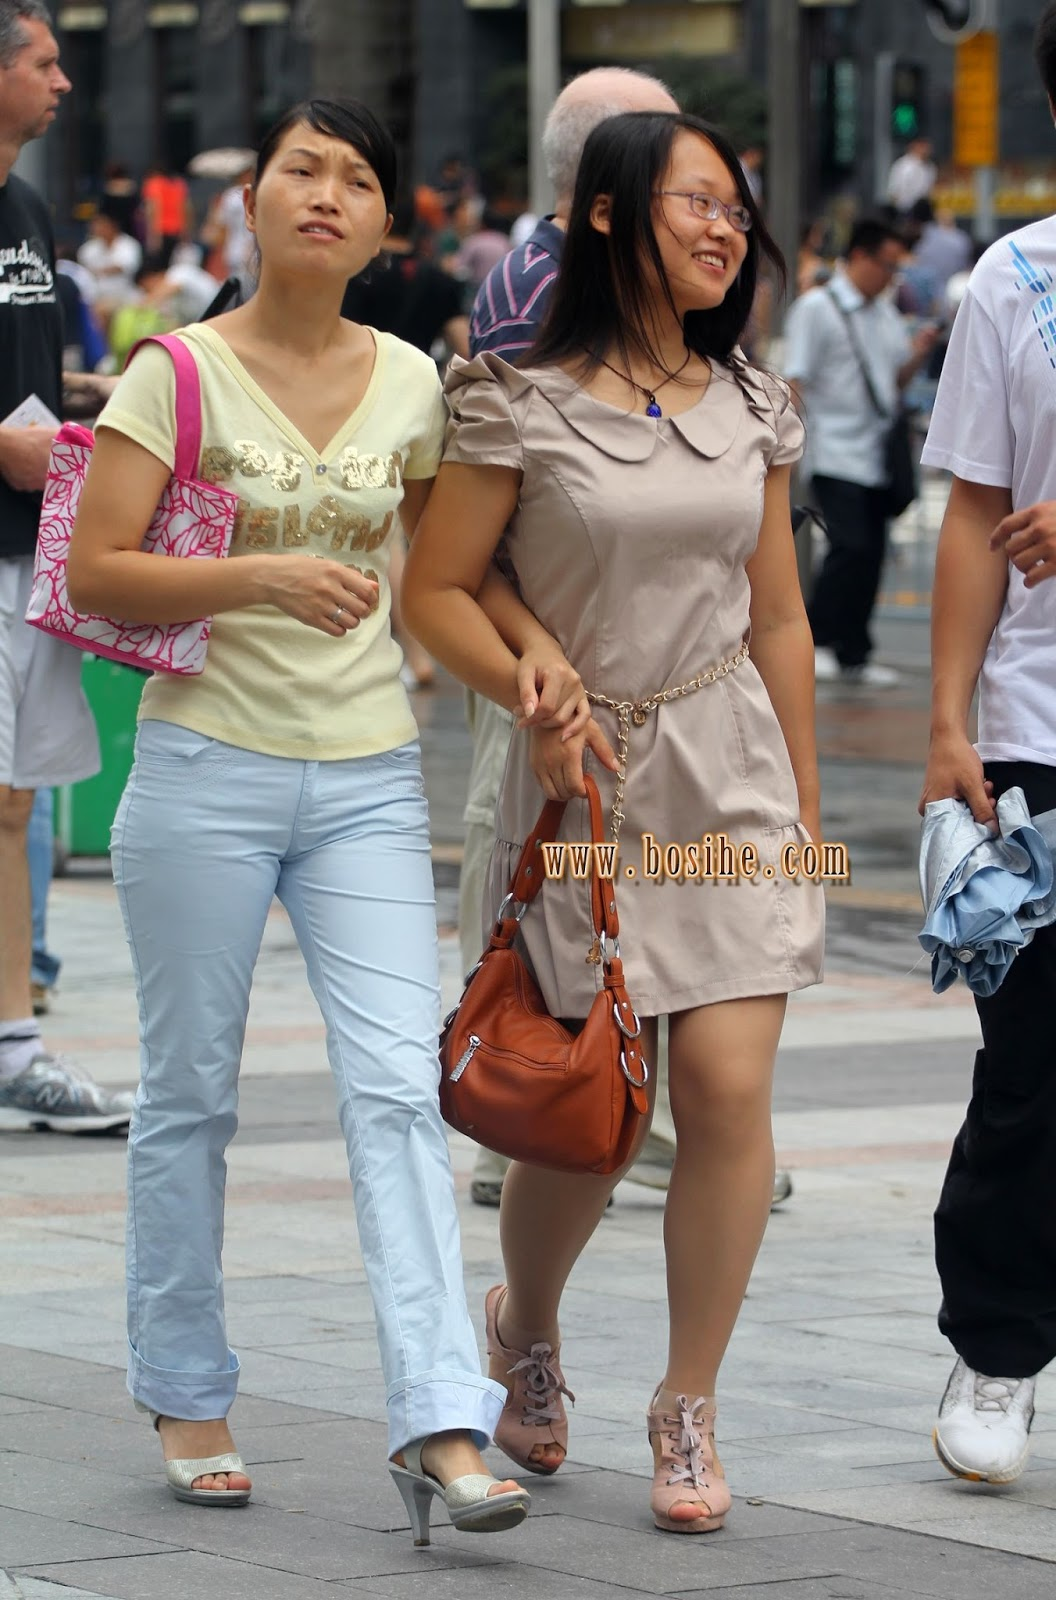 asia travel photography: chinese street candid a cameltoe,tights